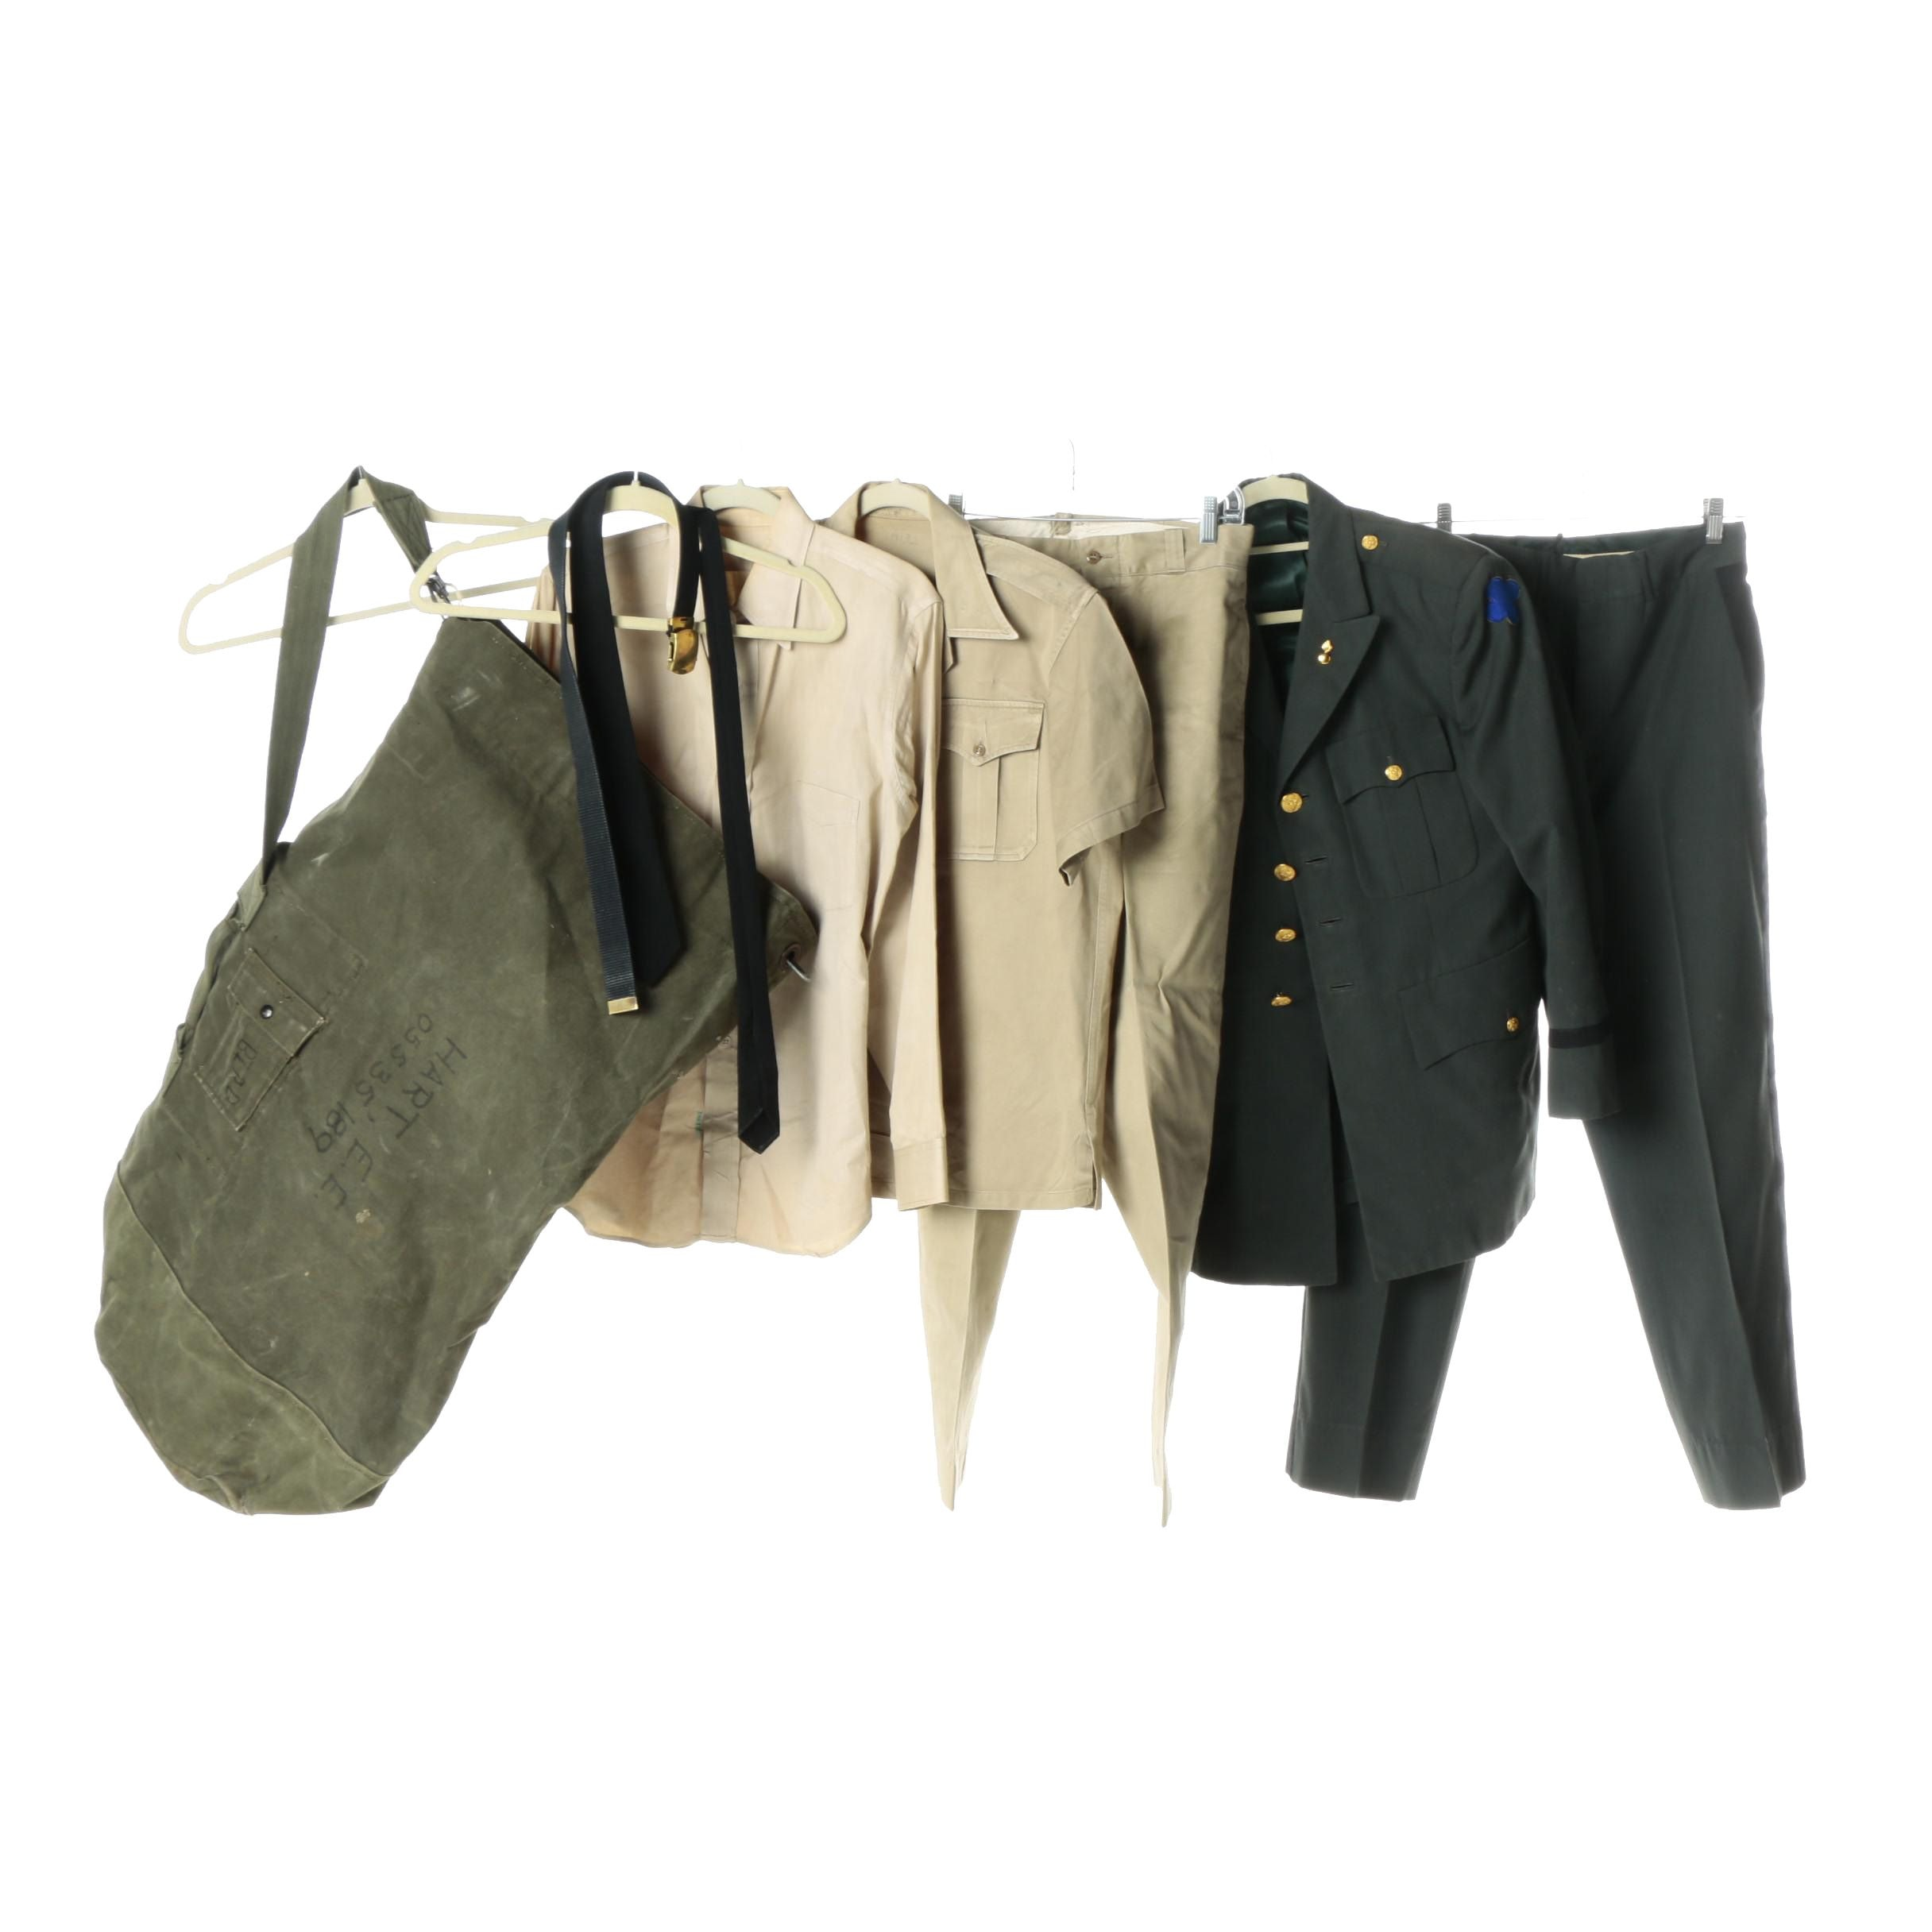 US Army Uniforms with Duffel Bag